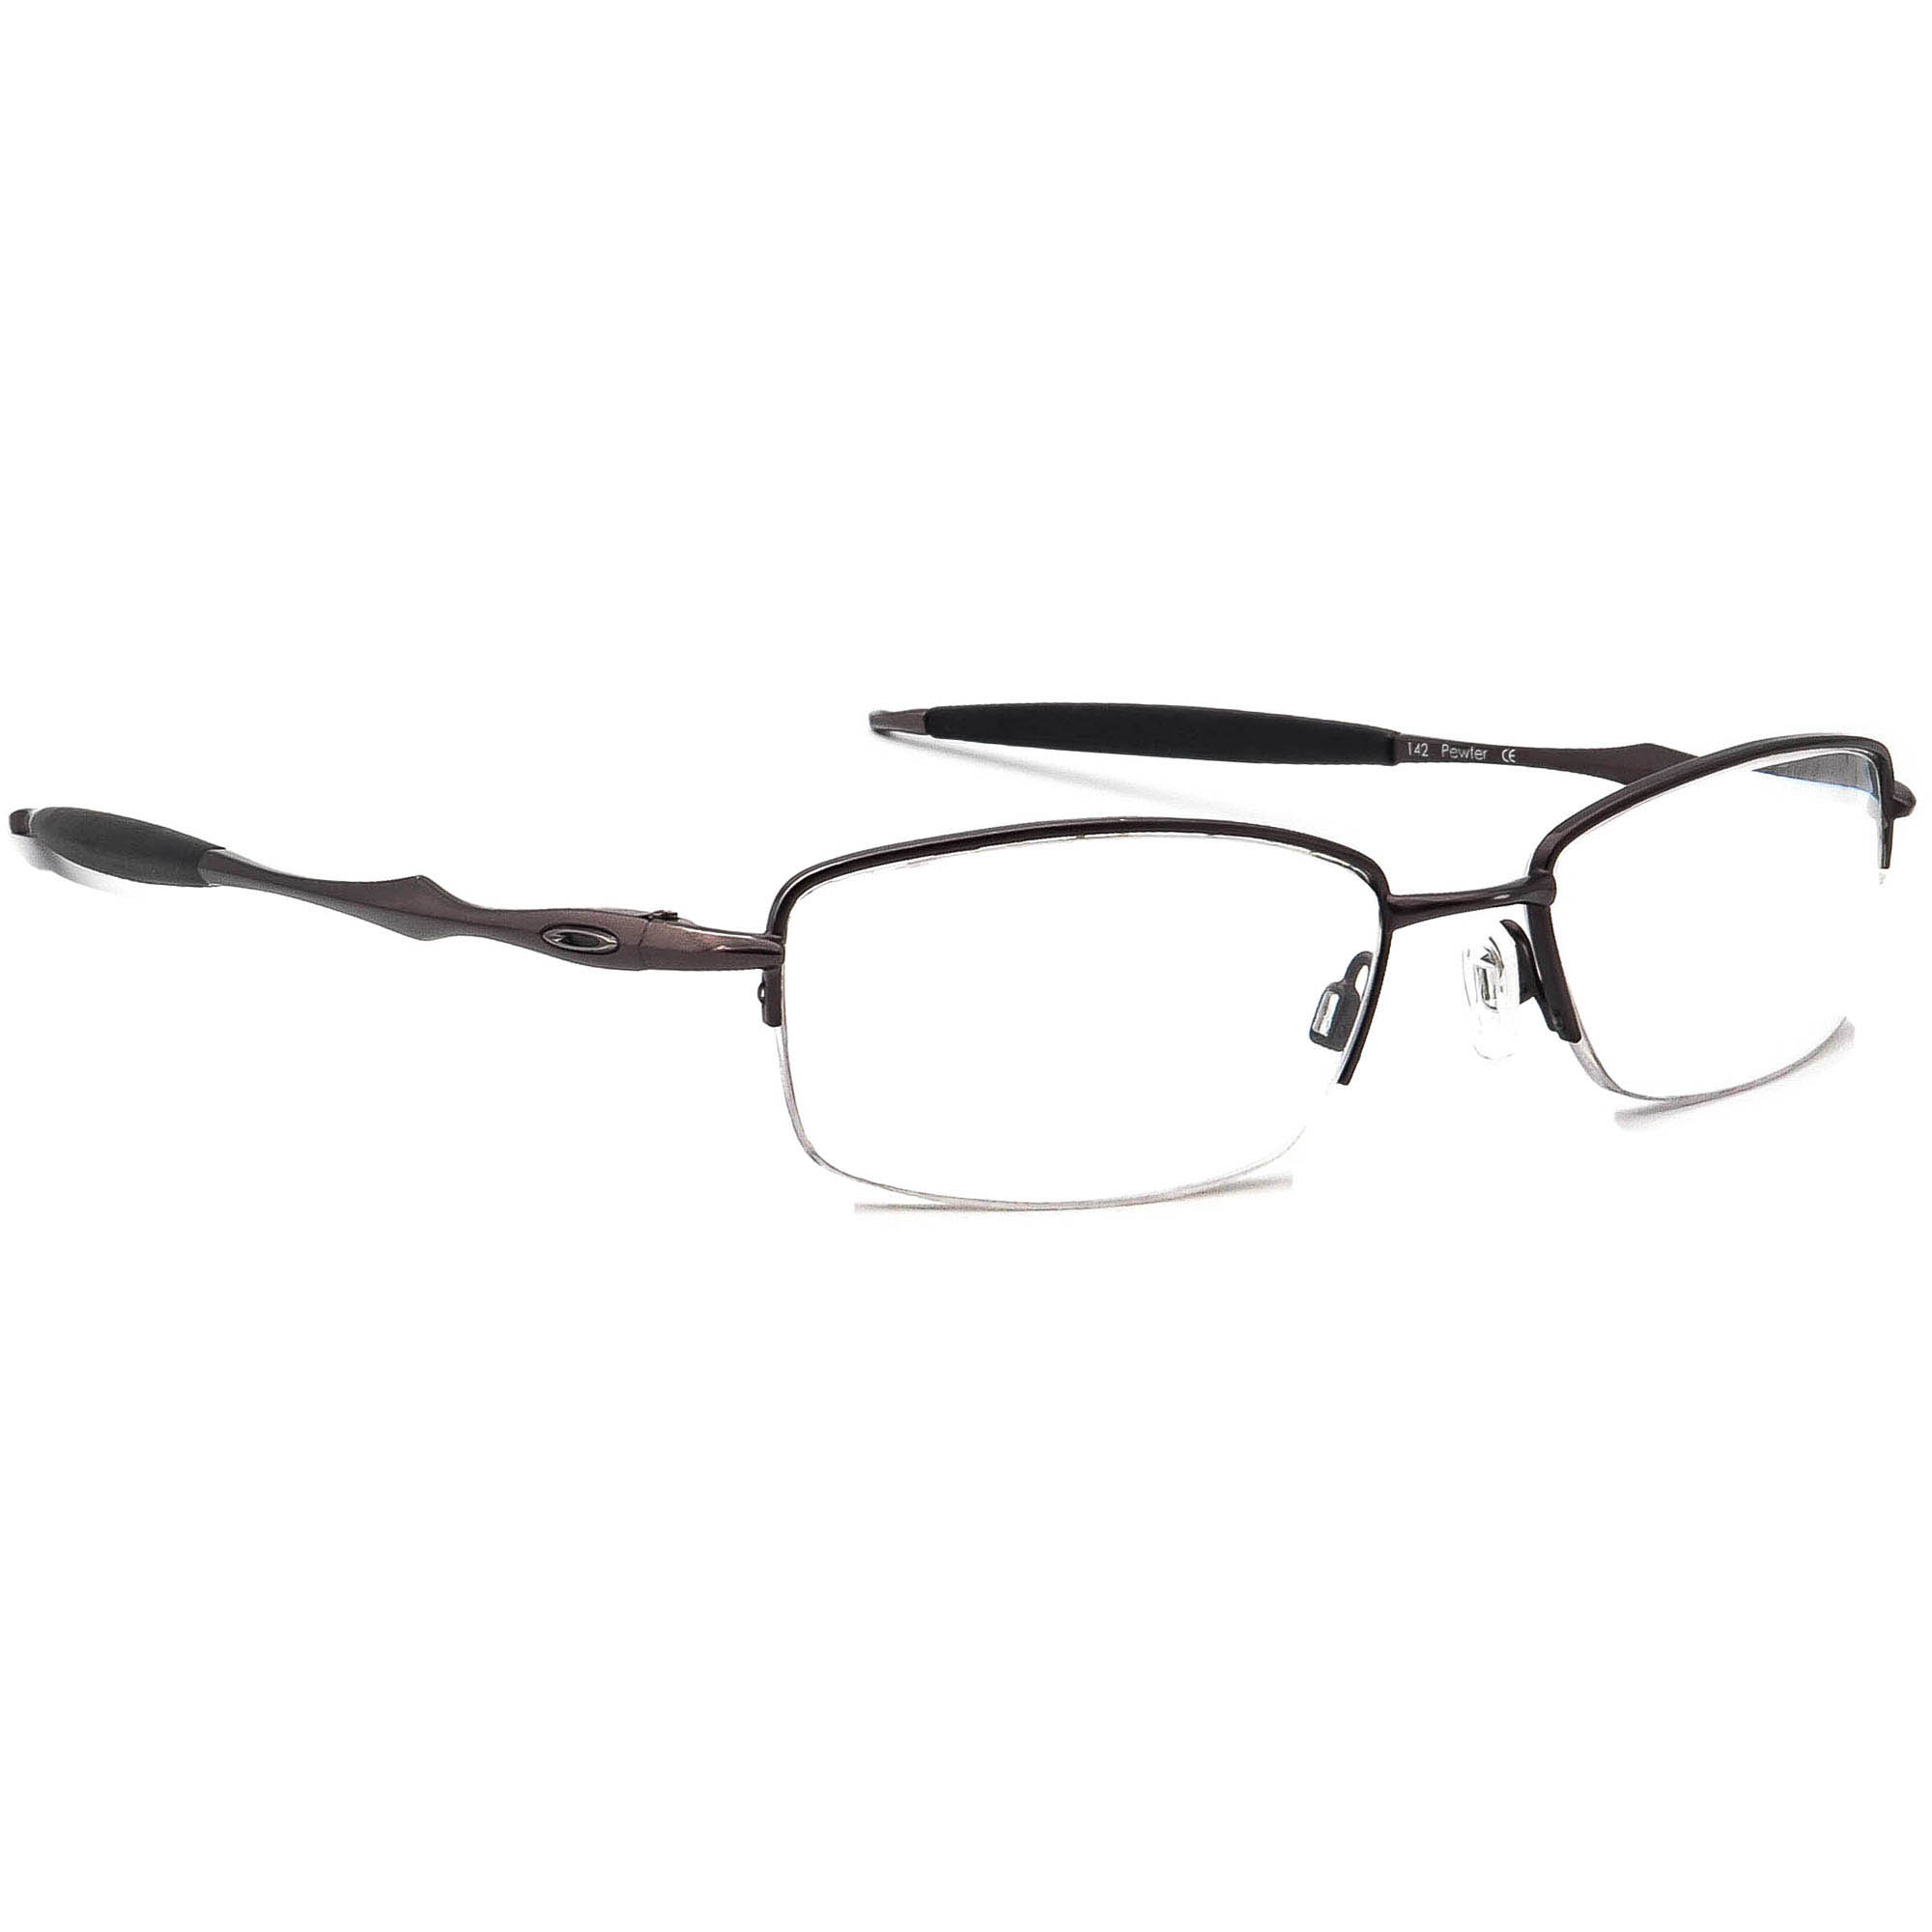 Oakley Sculpt 6.0 Eyeglasses